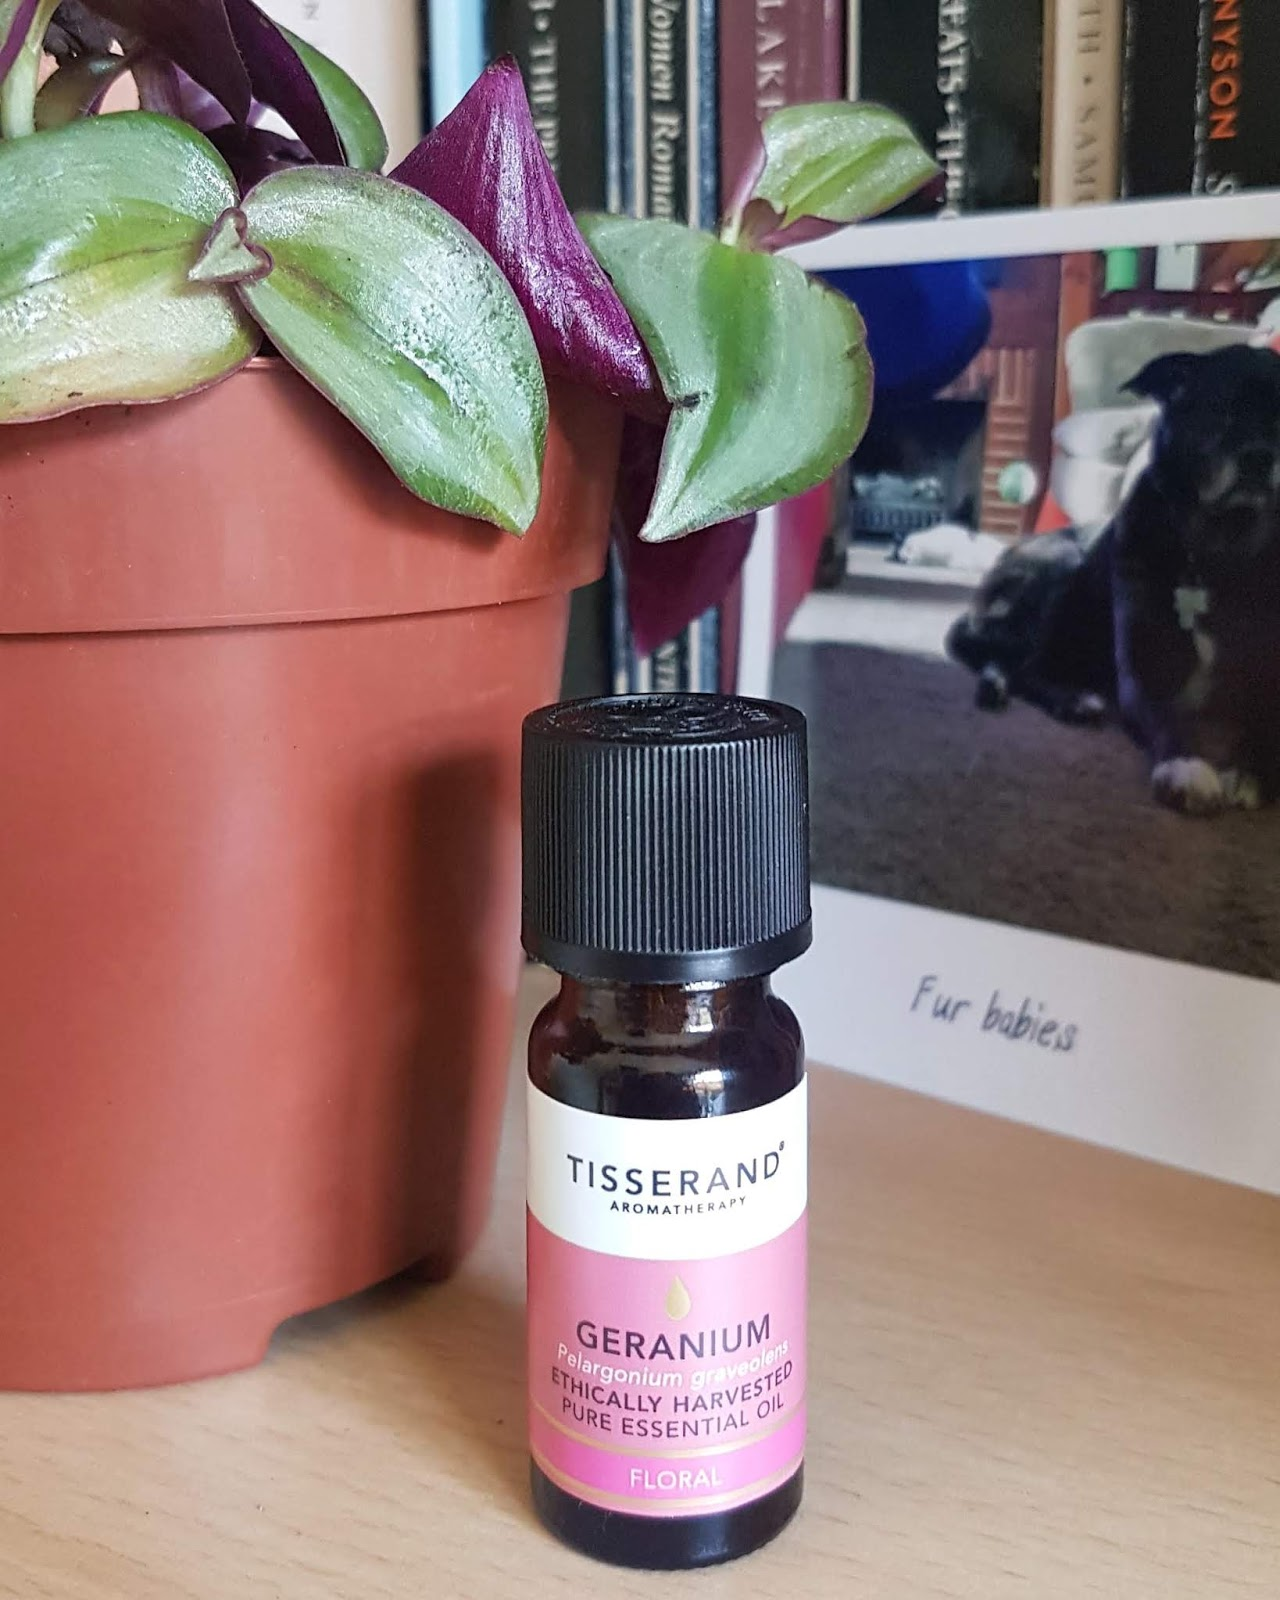 Tisserand Geranium Essential Oil Review